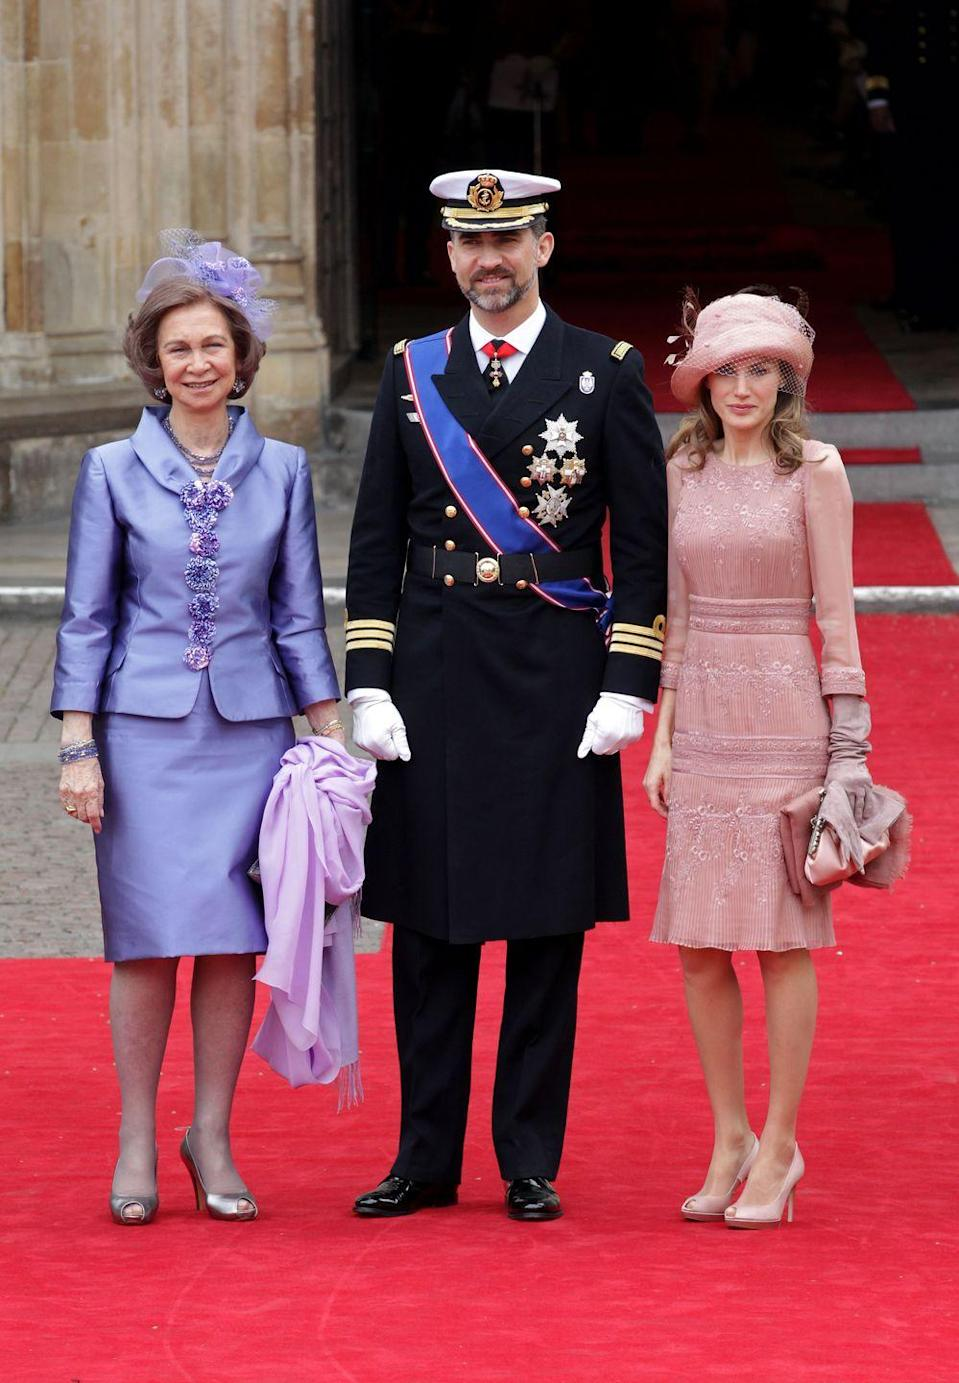 <p>Queen Sofia of Spain stands alongside then-Prince Felipe and Princess Letizia at the royal wedding of William and Catherine.</p>